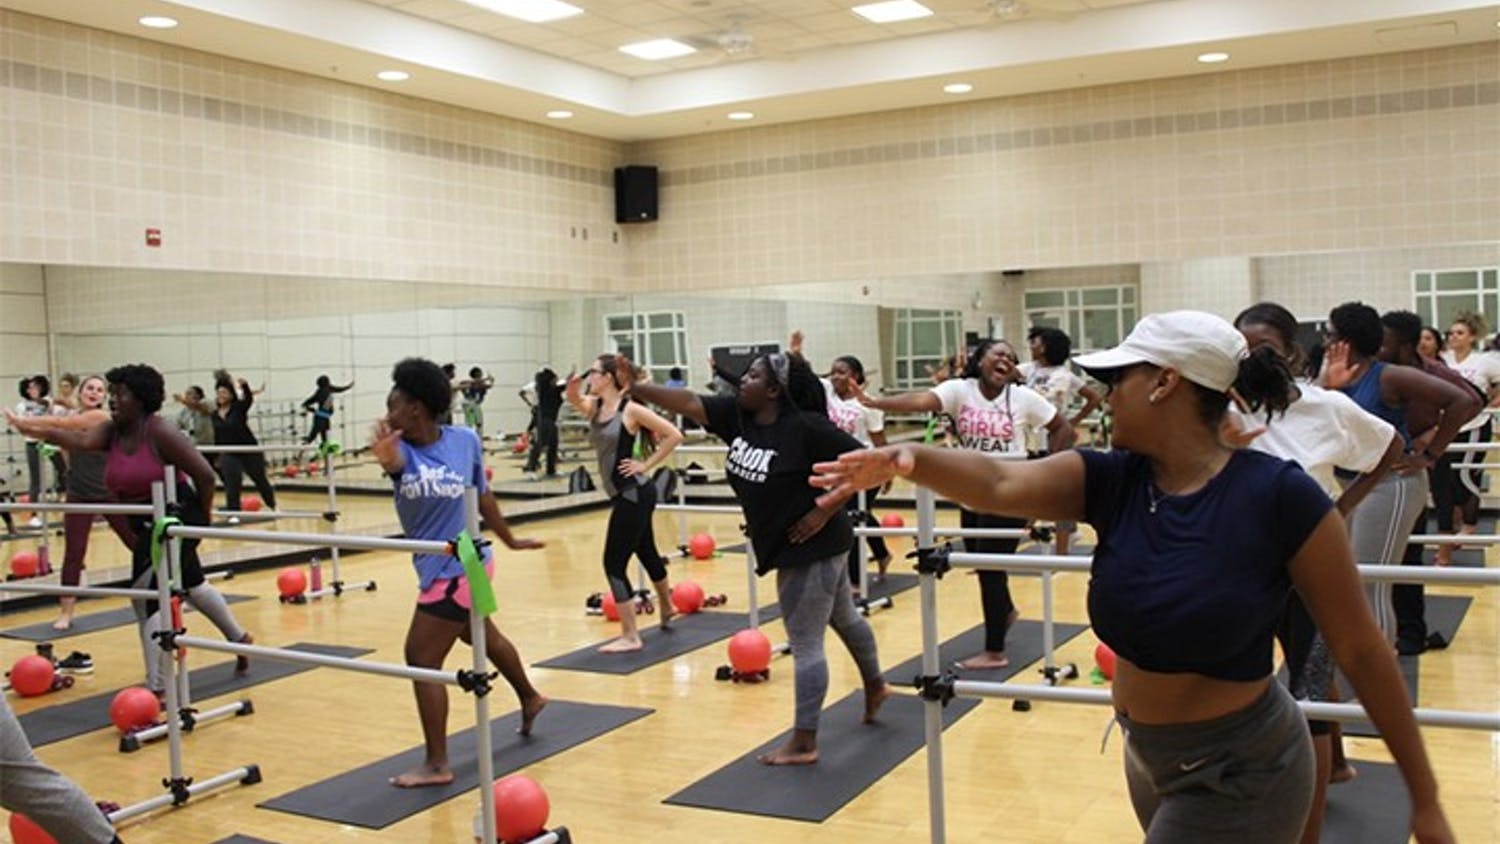 Members of USC's PRETTY GIRLS SWEAT chapter exercise in Strom Thurmond Wellness and Fitness Center. The members use a variety of equipment during their sessions.